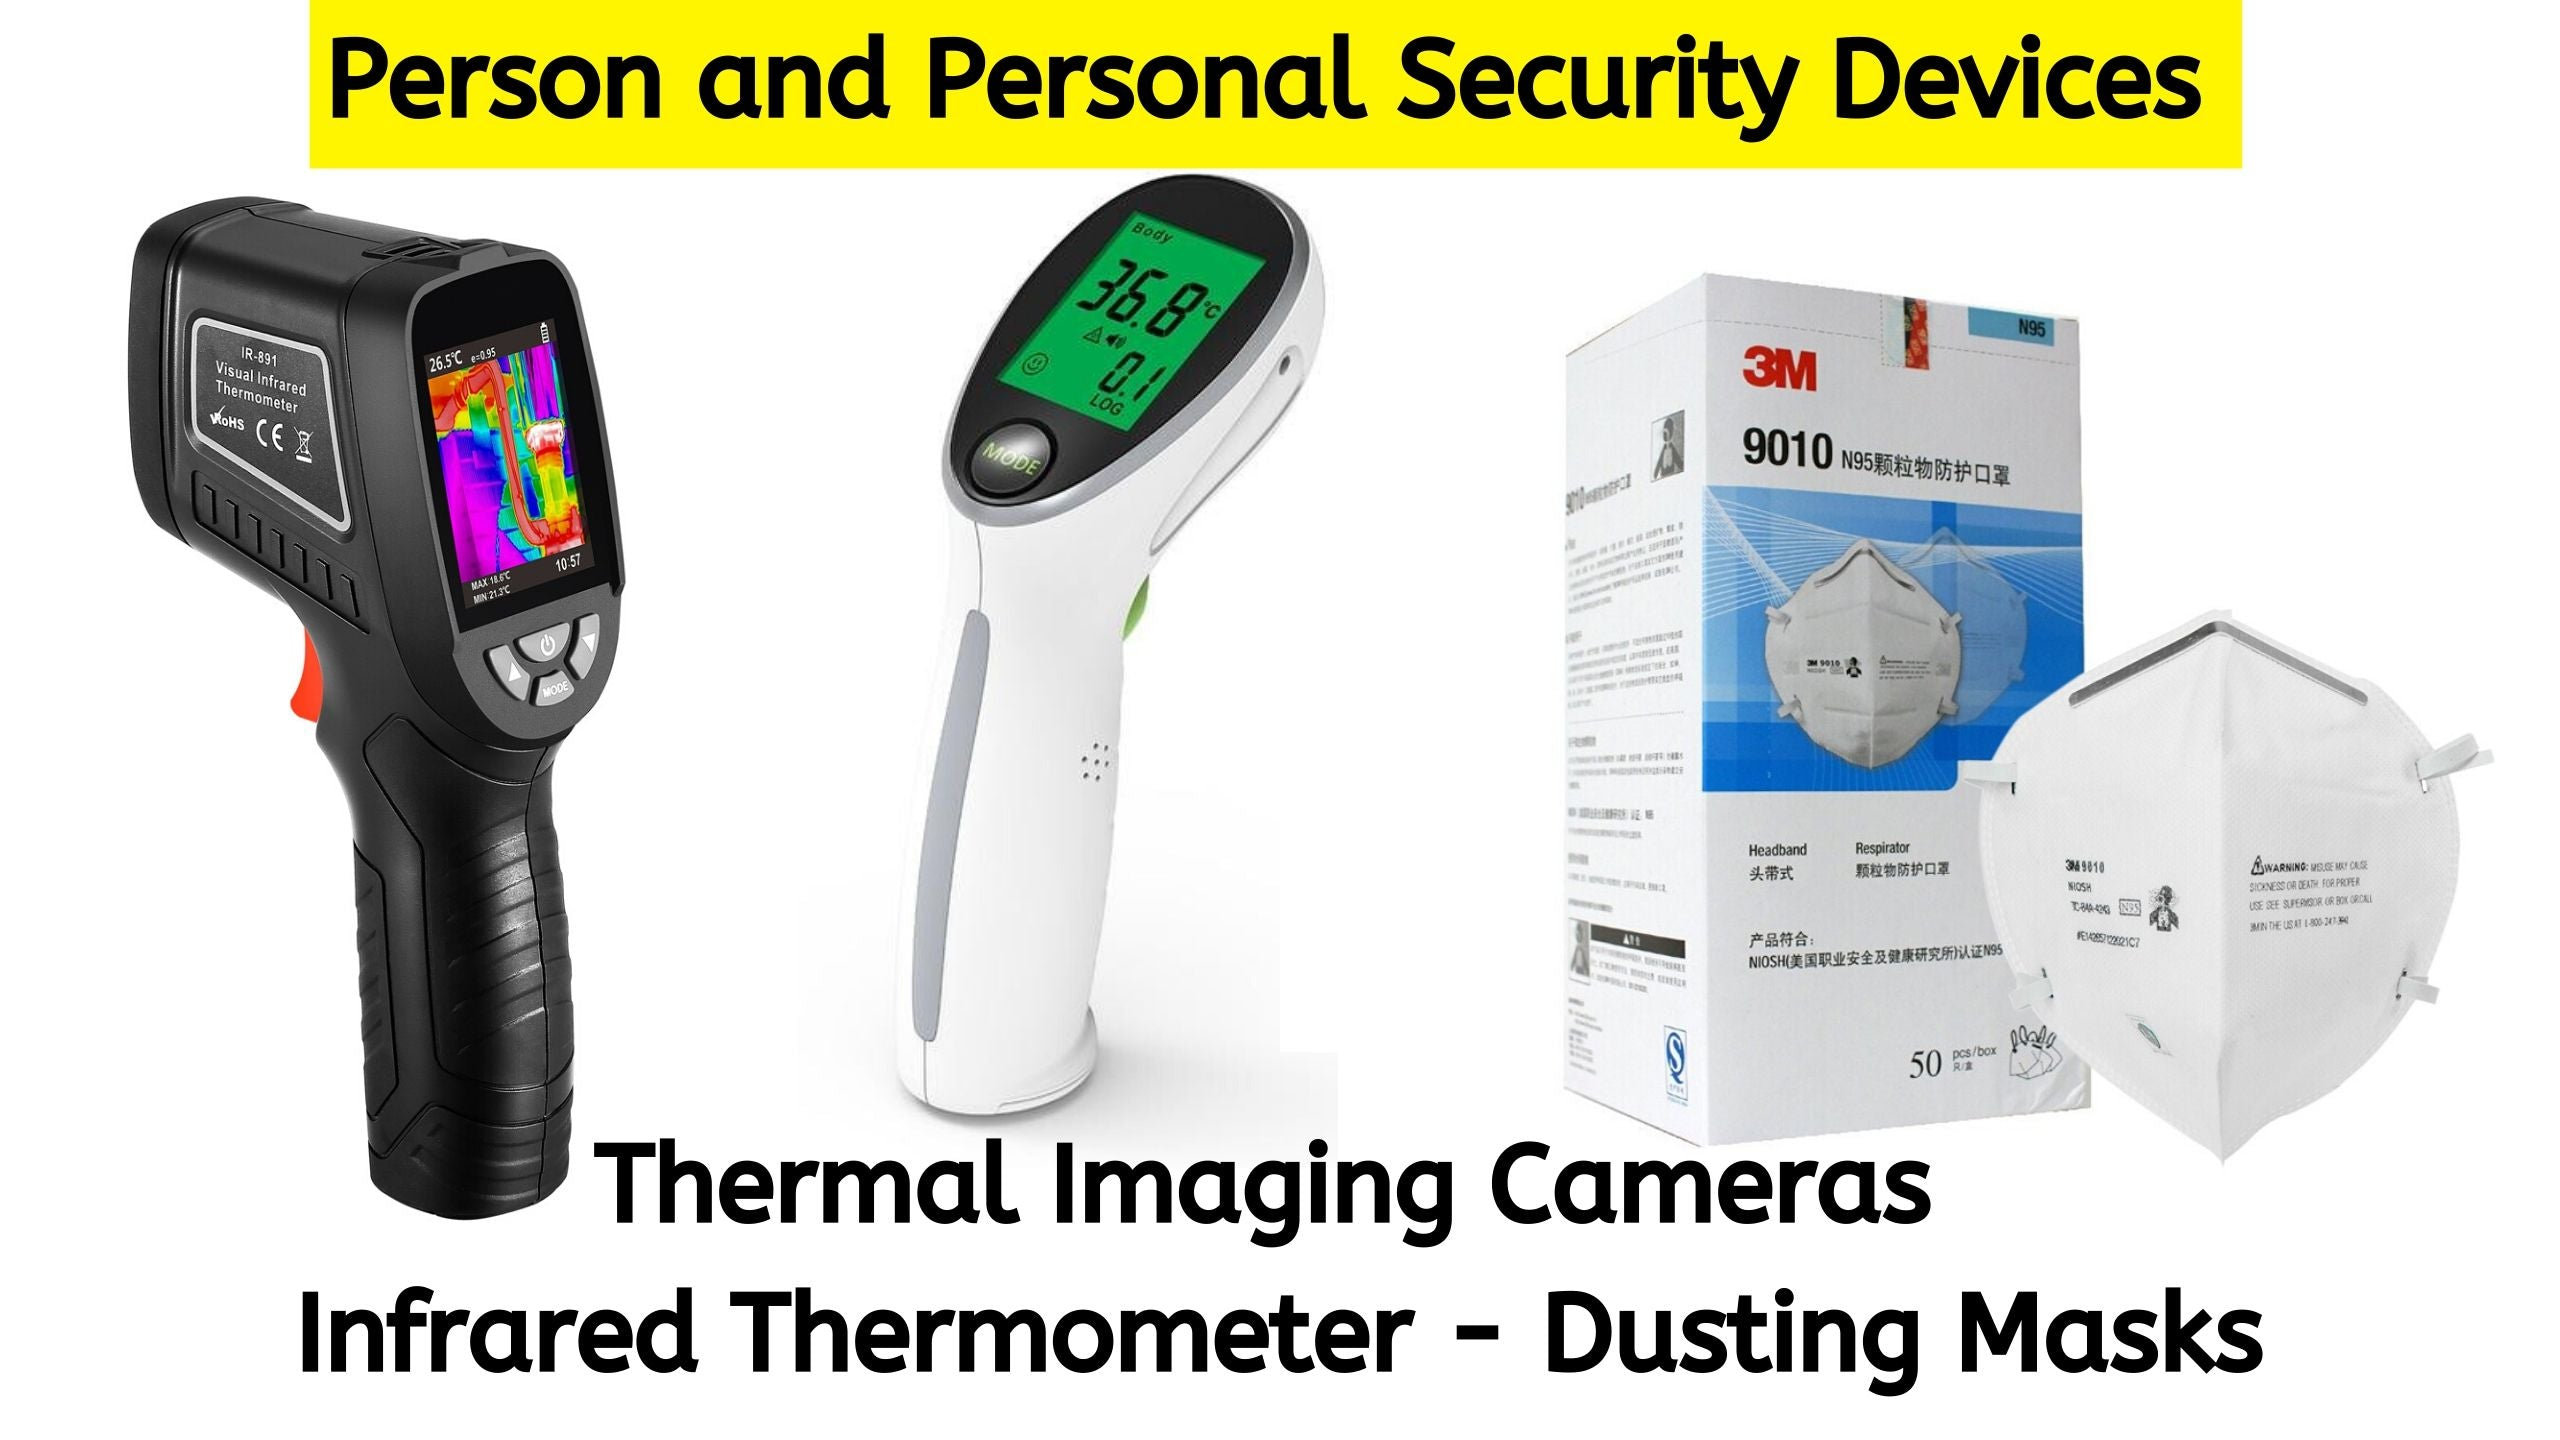 Infrared Thermometer Thermal Imaging Cameras